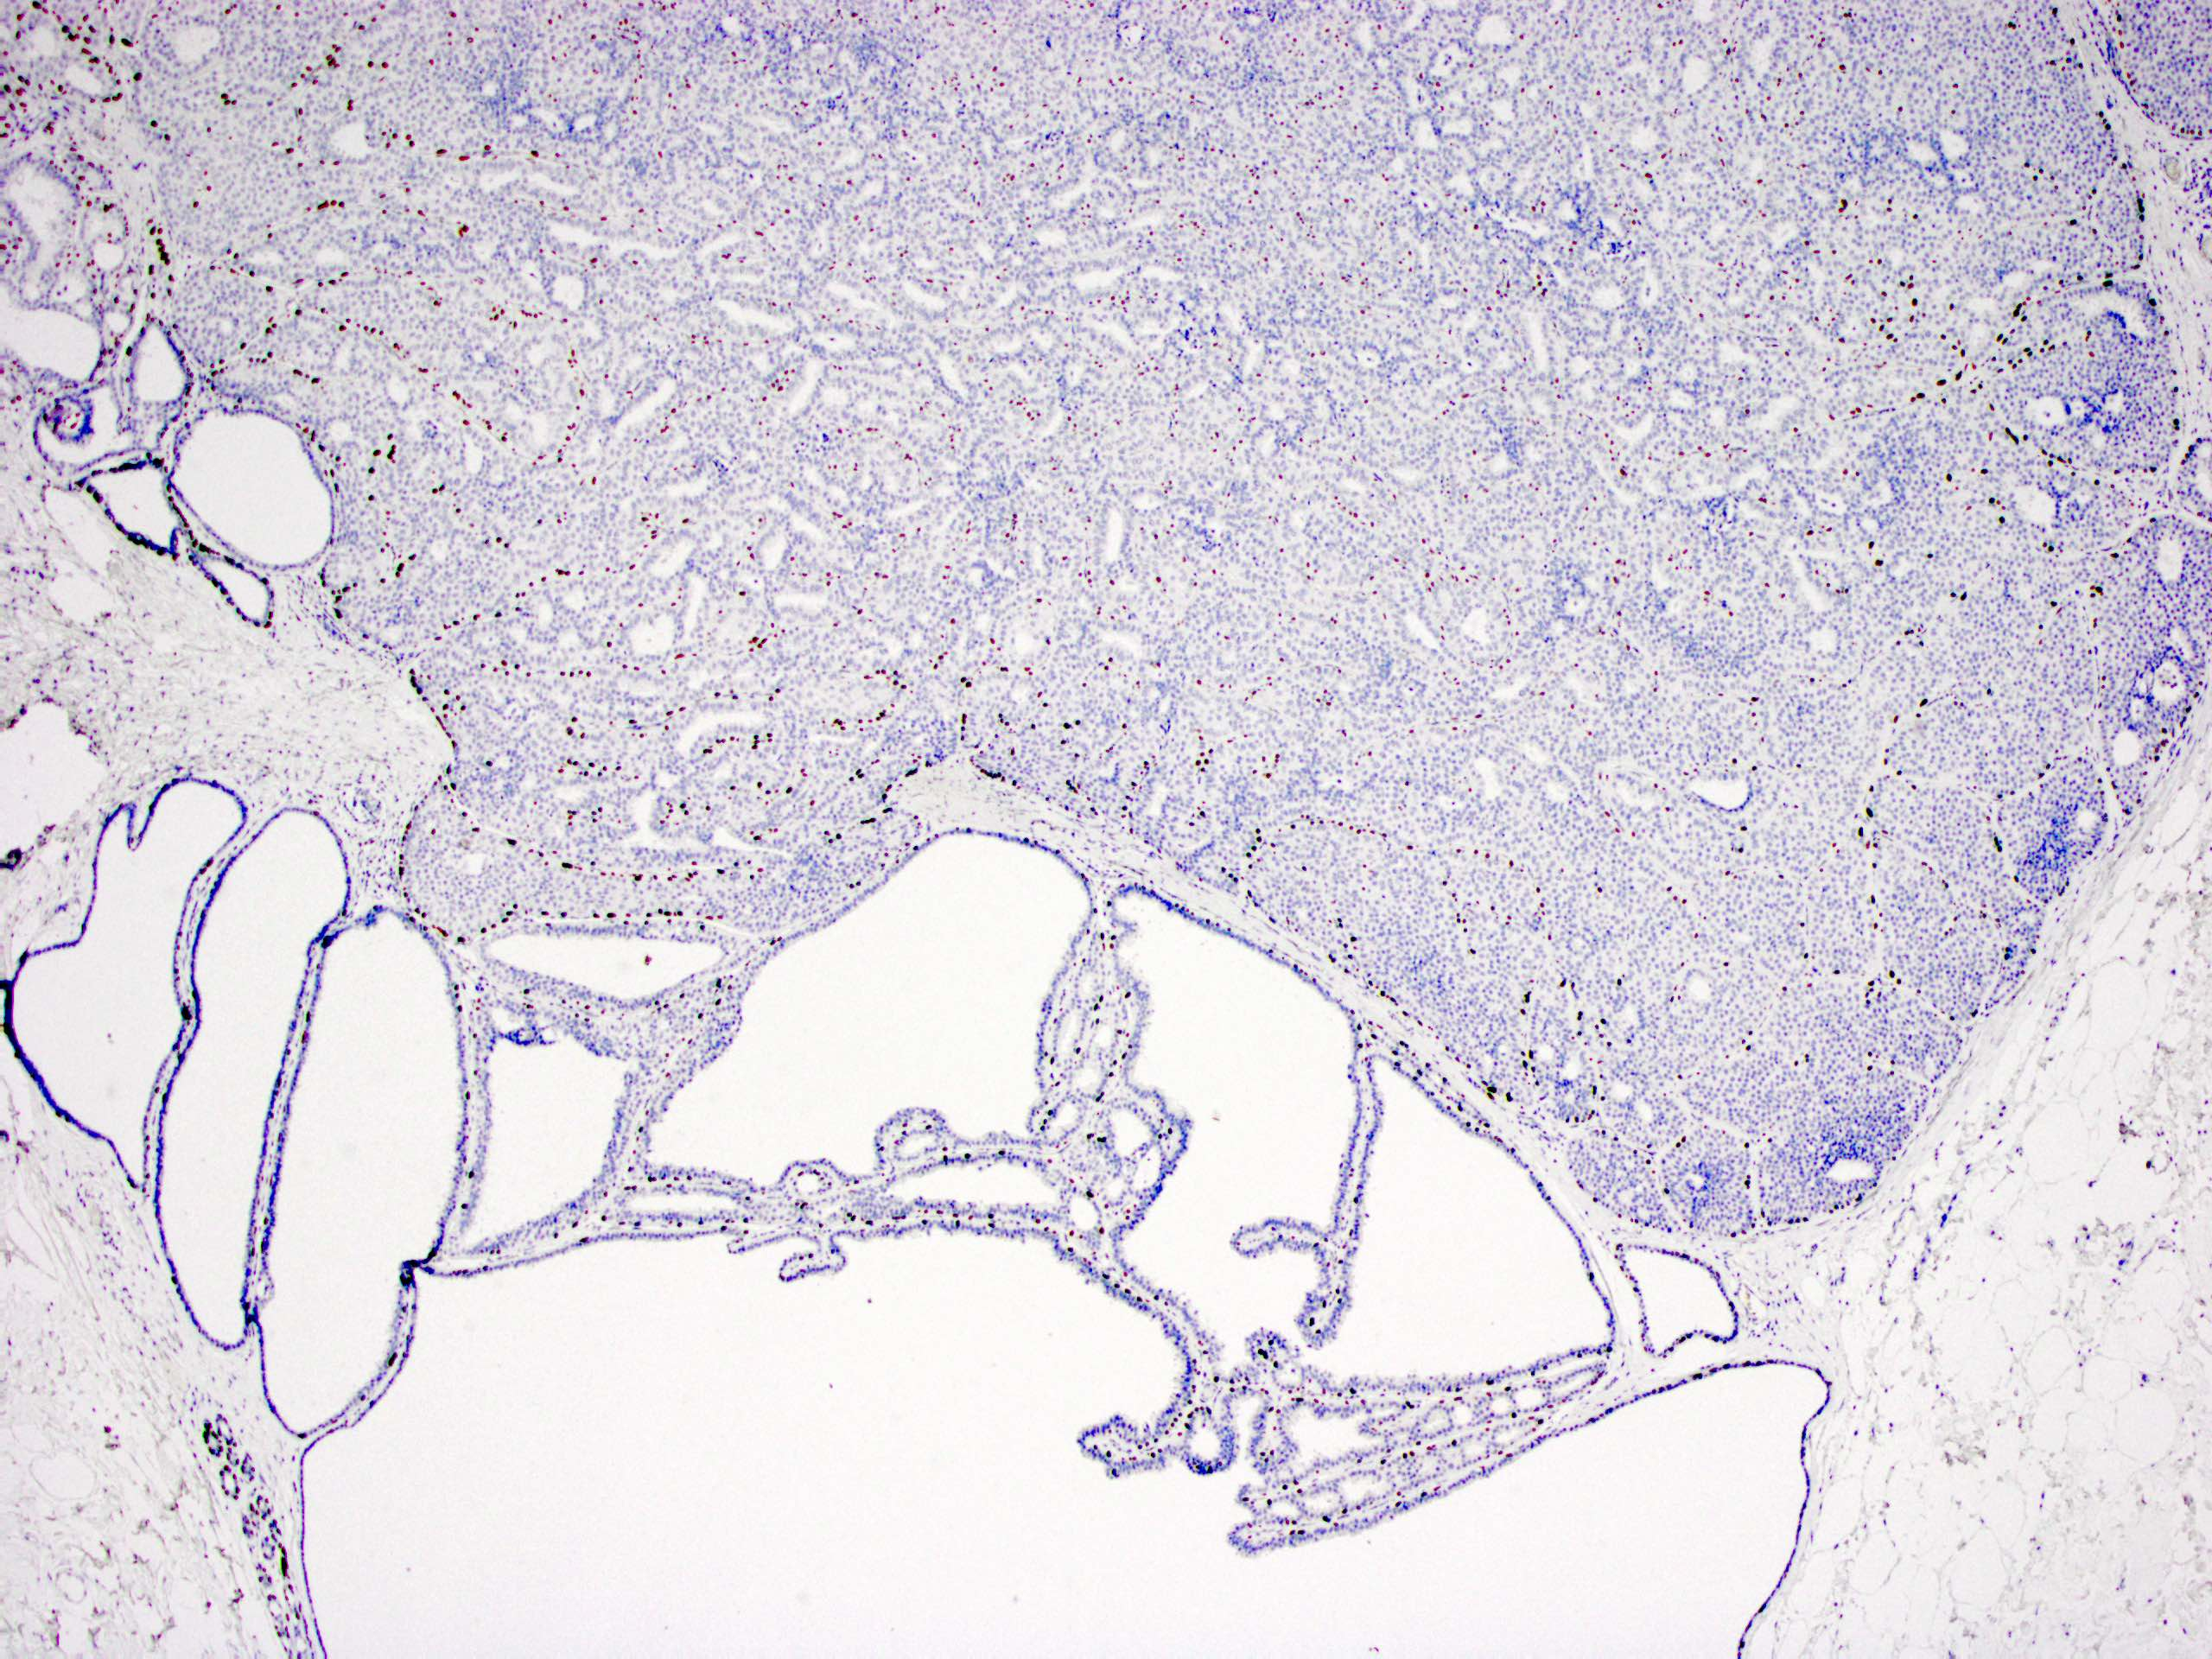 Involved by ductal carcinoma in situ